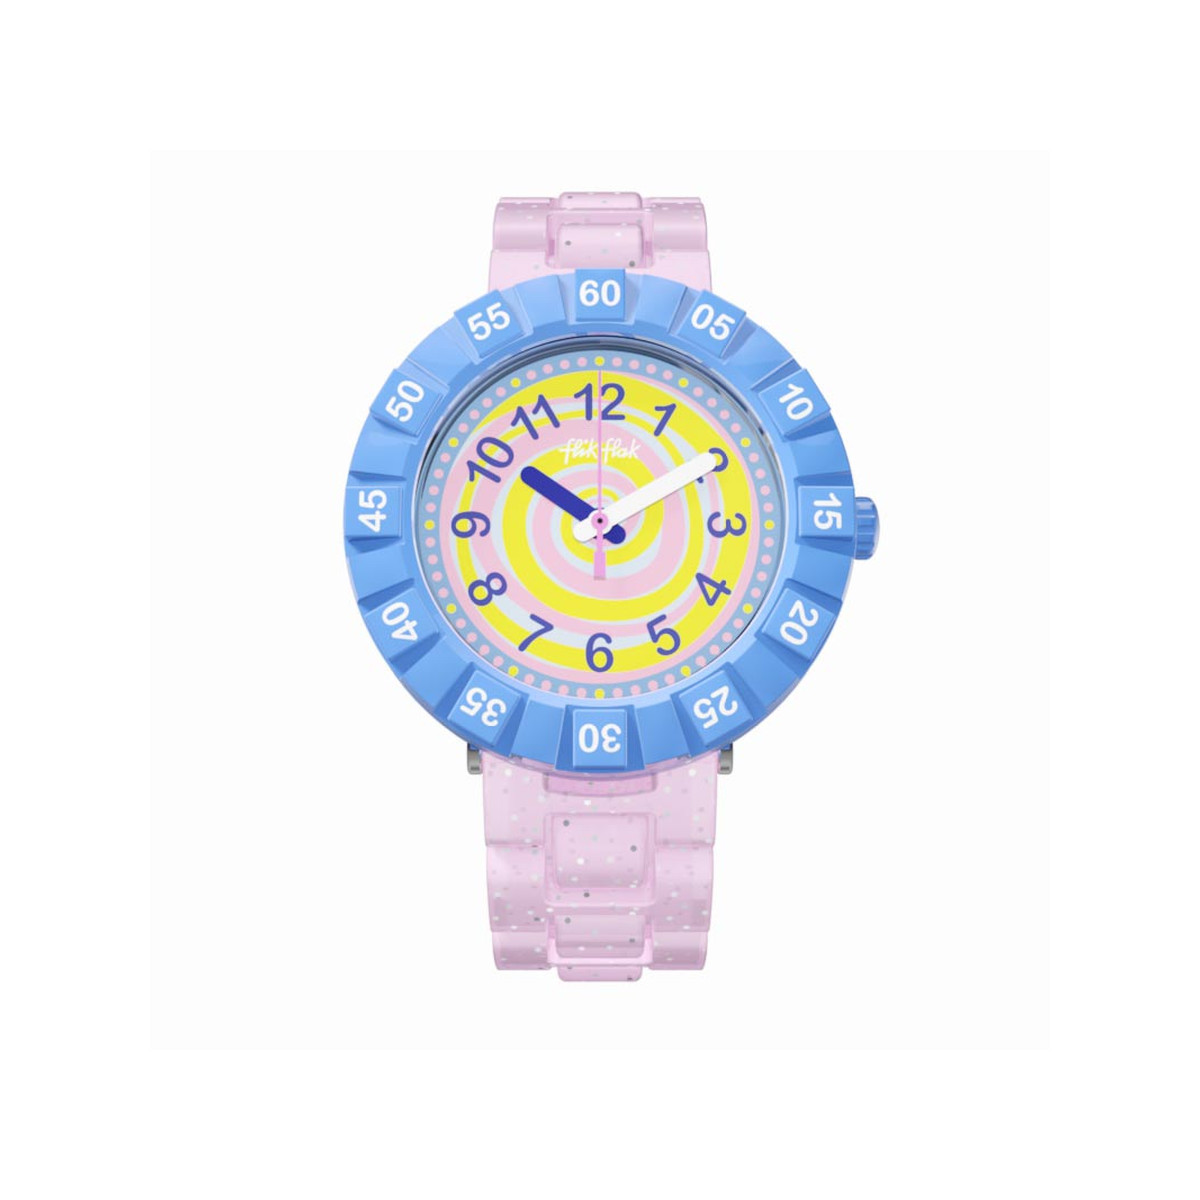 Montre Flik Flak fille Swirly Candy rose